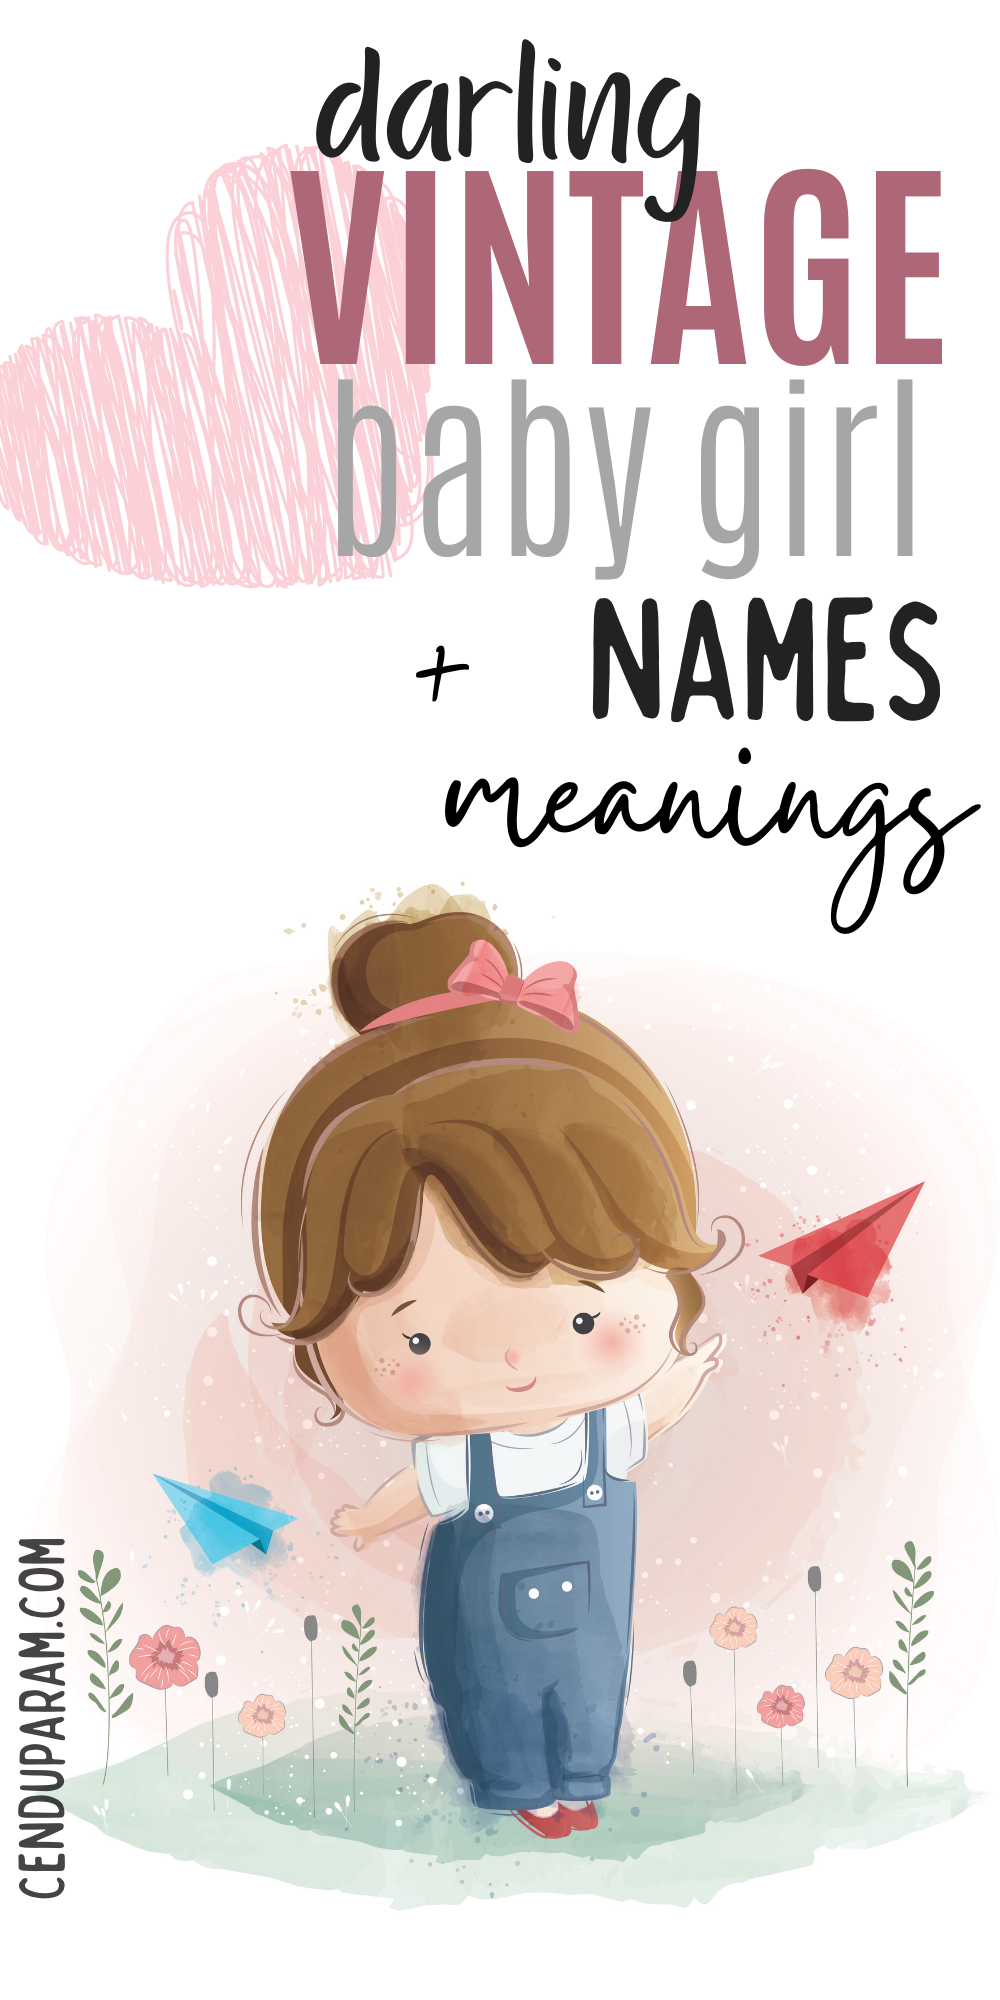 Unique Vintage Baby Girl Names and Meanings